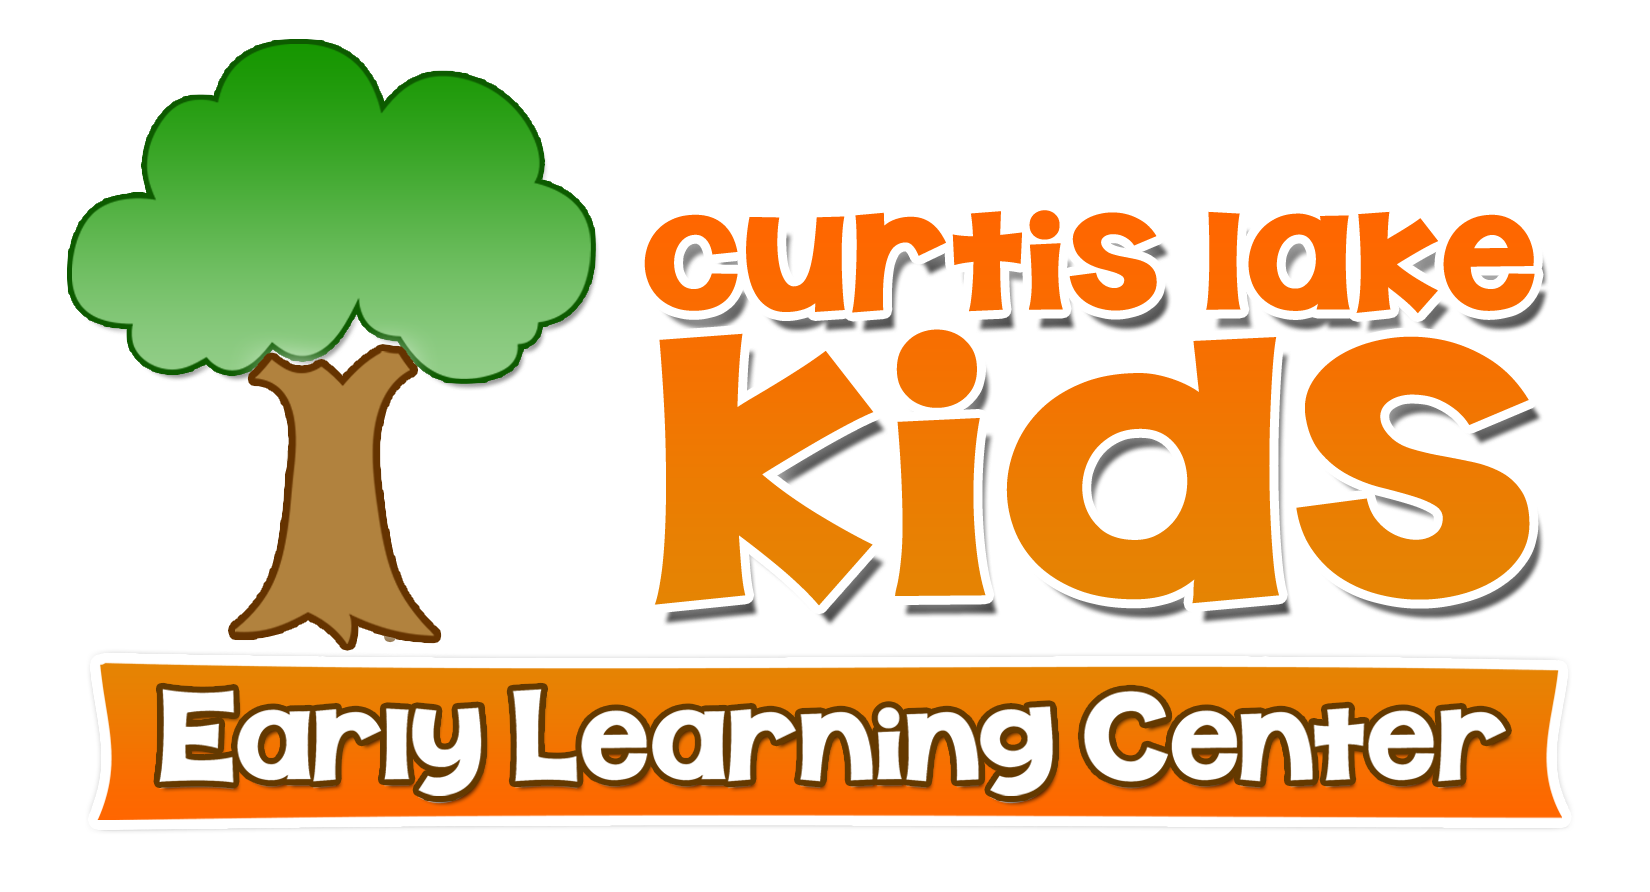 Curriculum clipart preschool center time. The early learning curtis